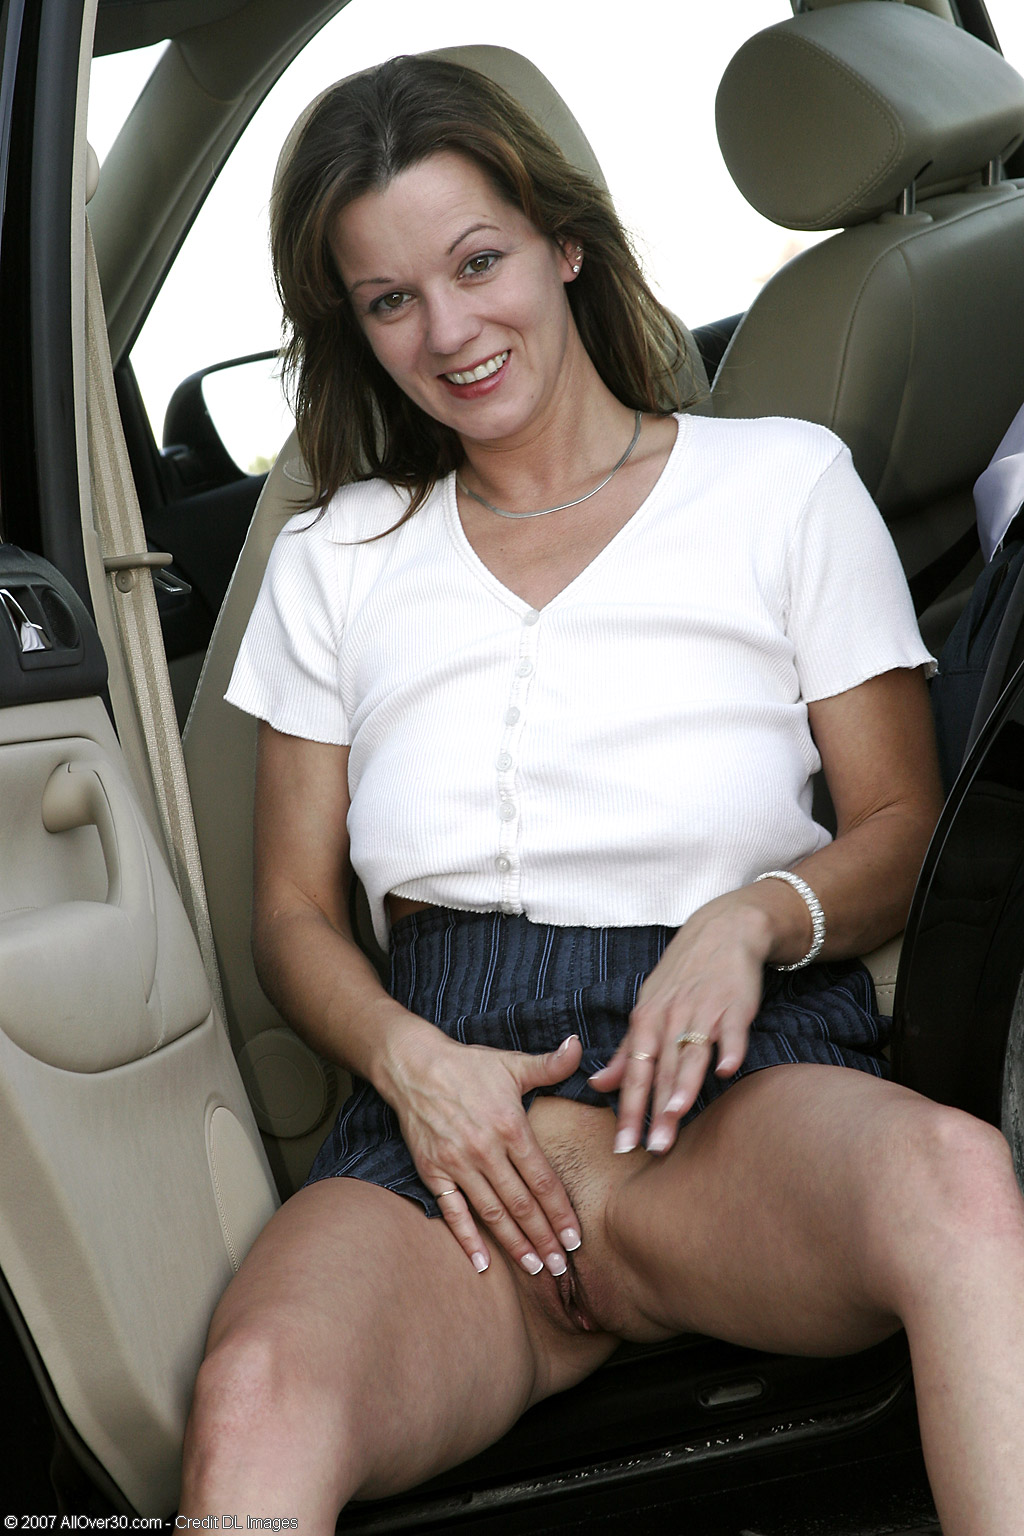 allover30free - featuring samantha - high quality mature and